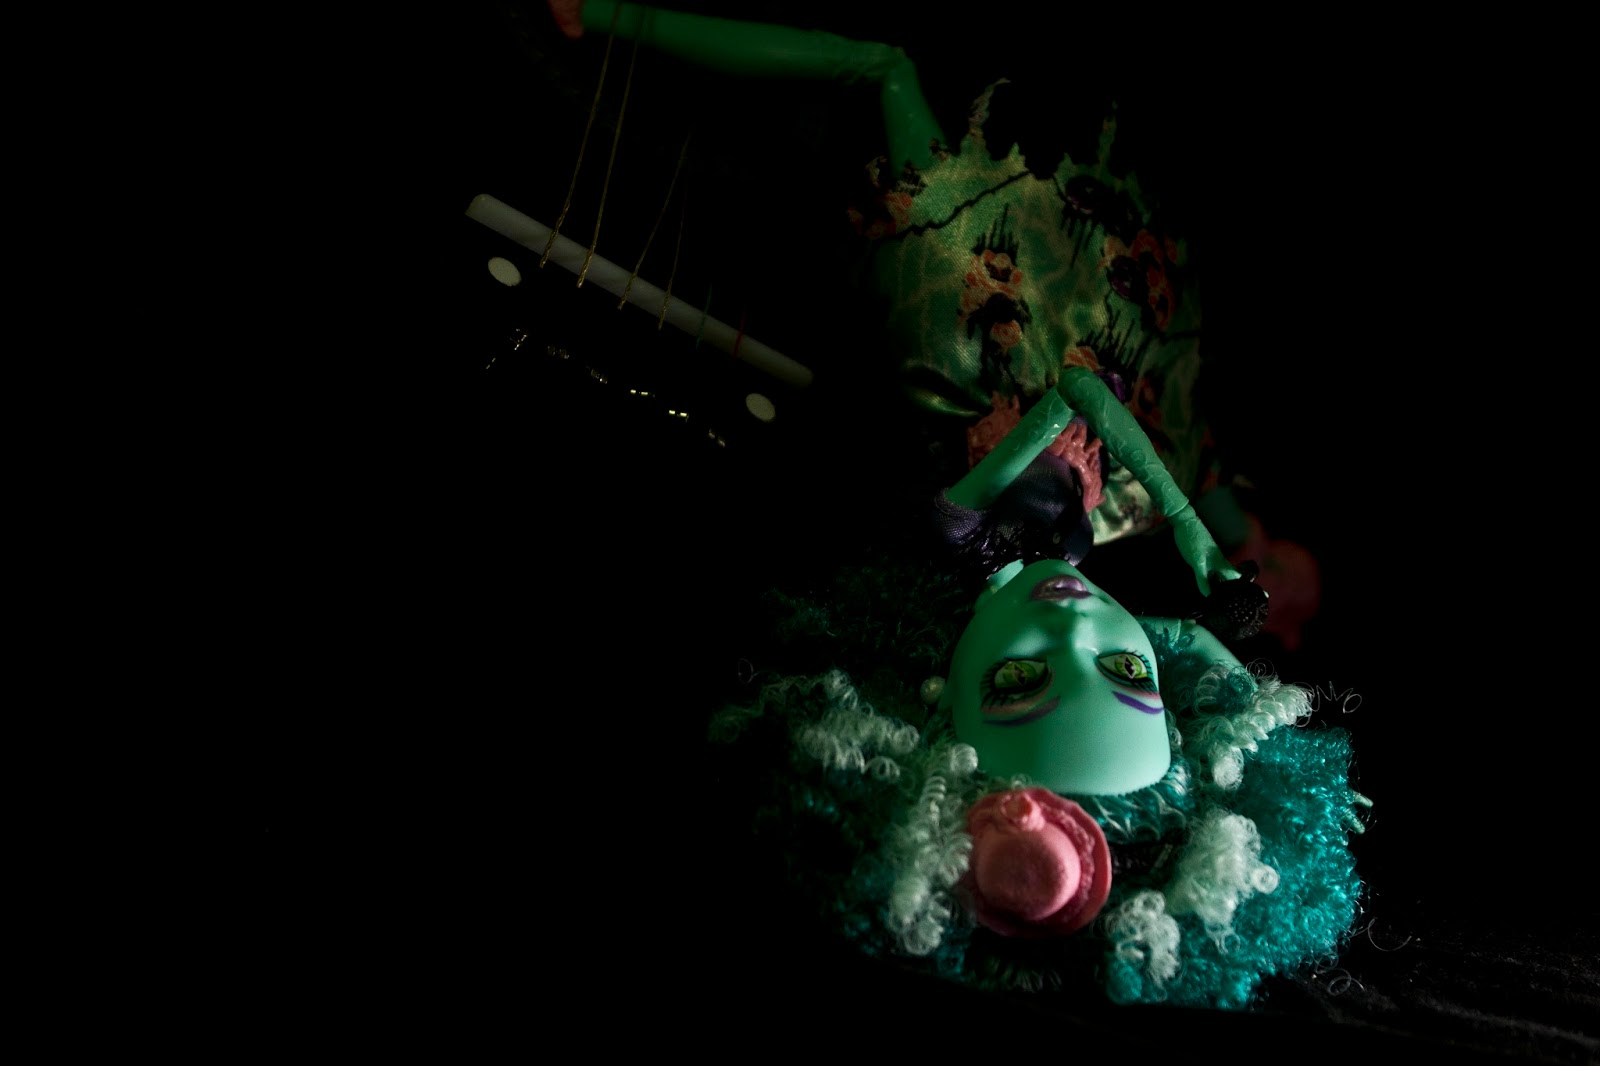 doll hanging upside down as she dies from a rock n roll concert